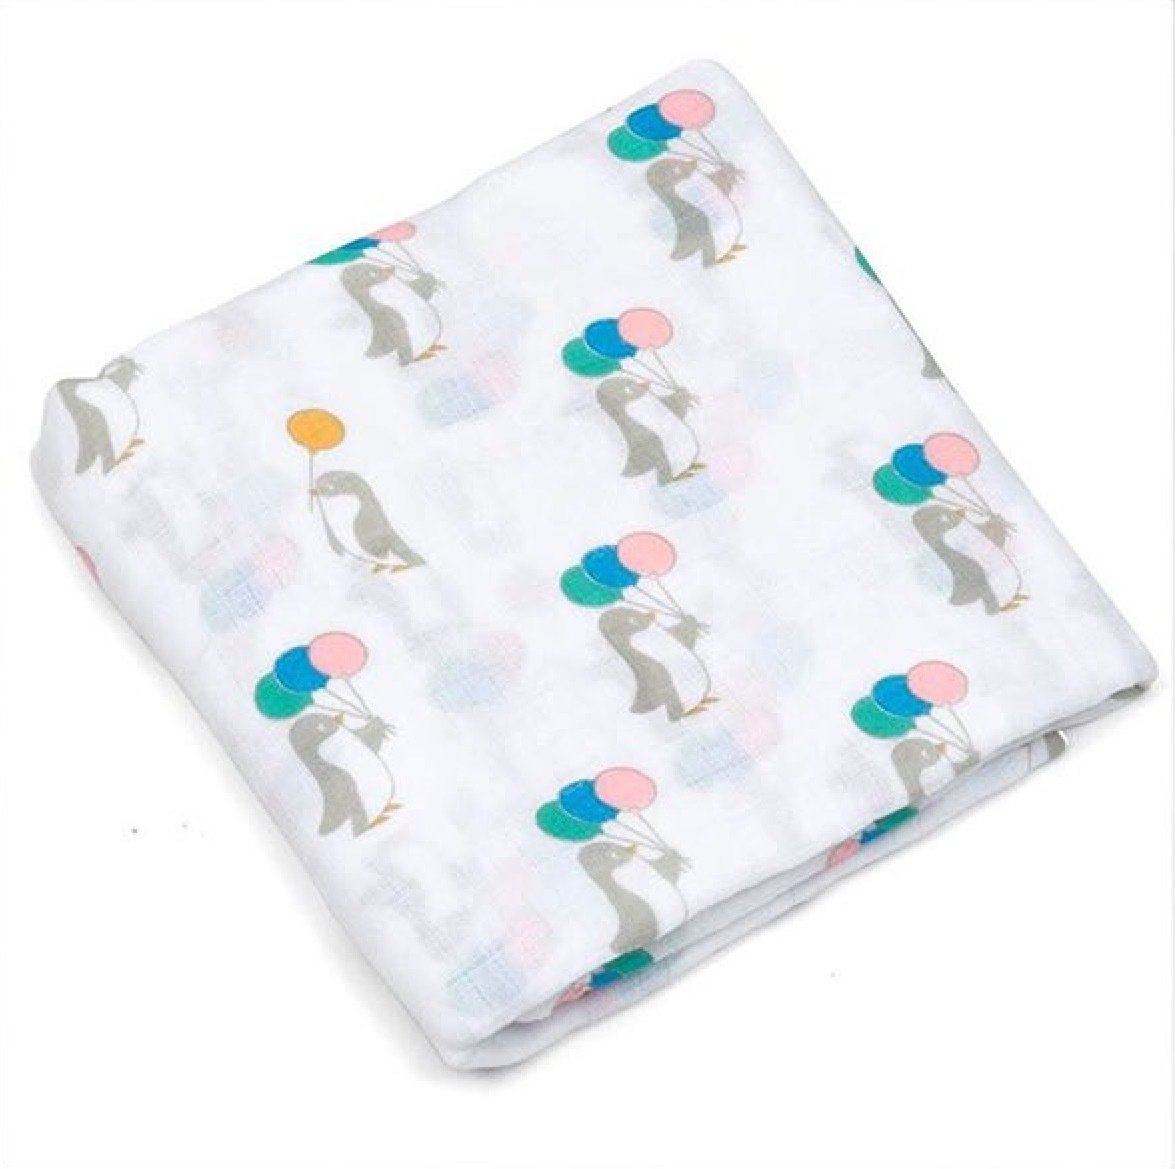 Lil' Cubs Grey Penguins with Balloons Swaddle Muslin